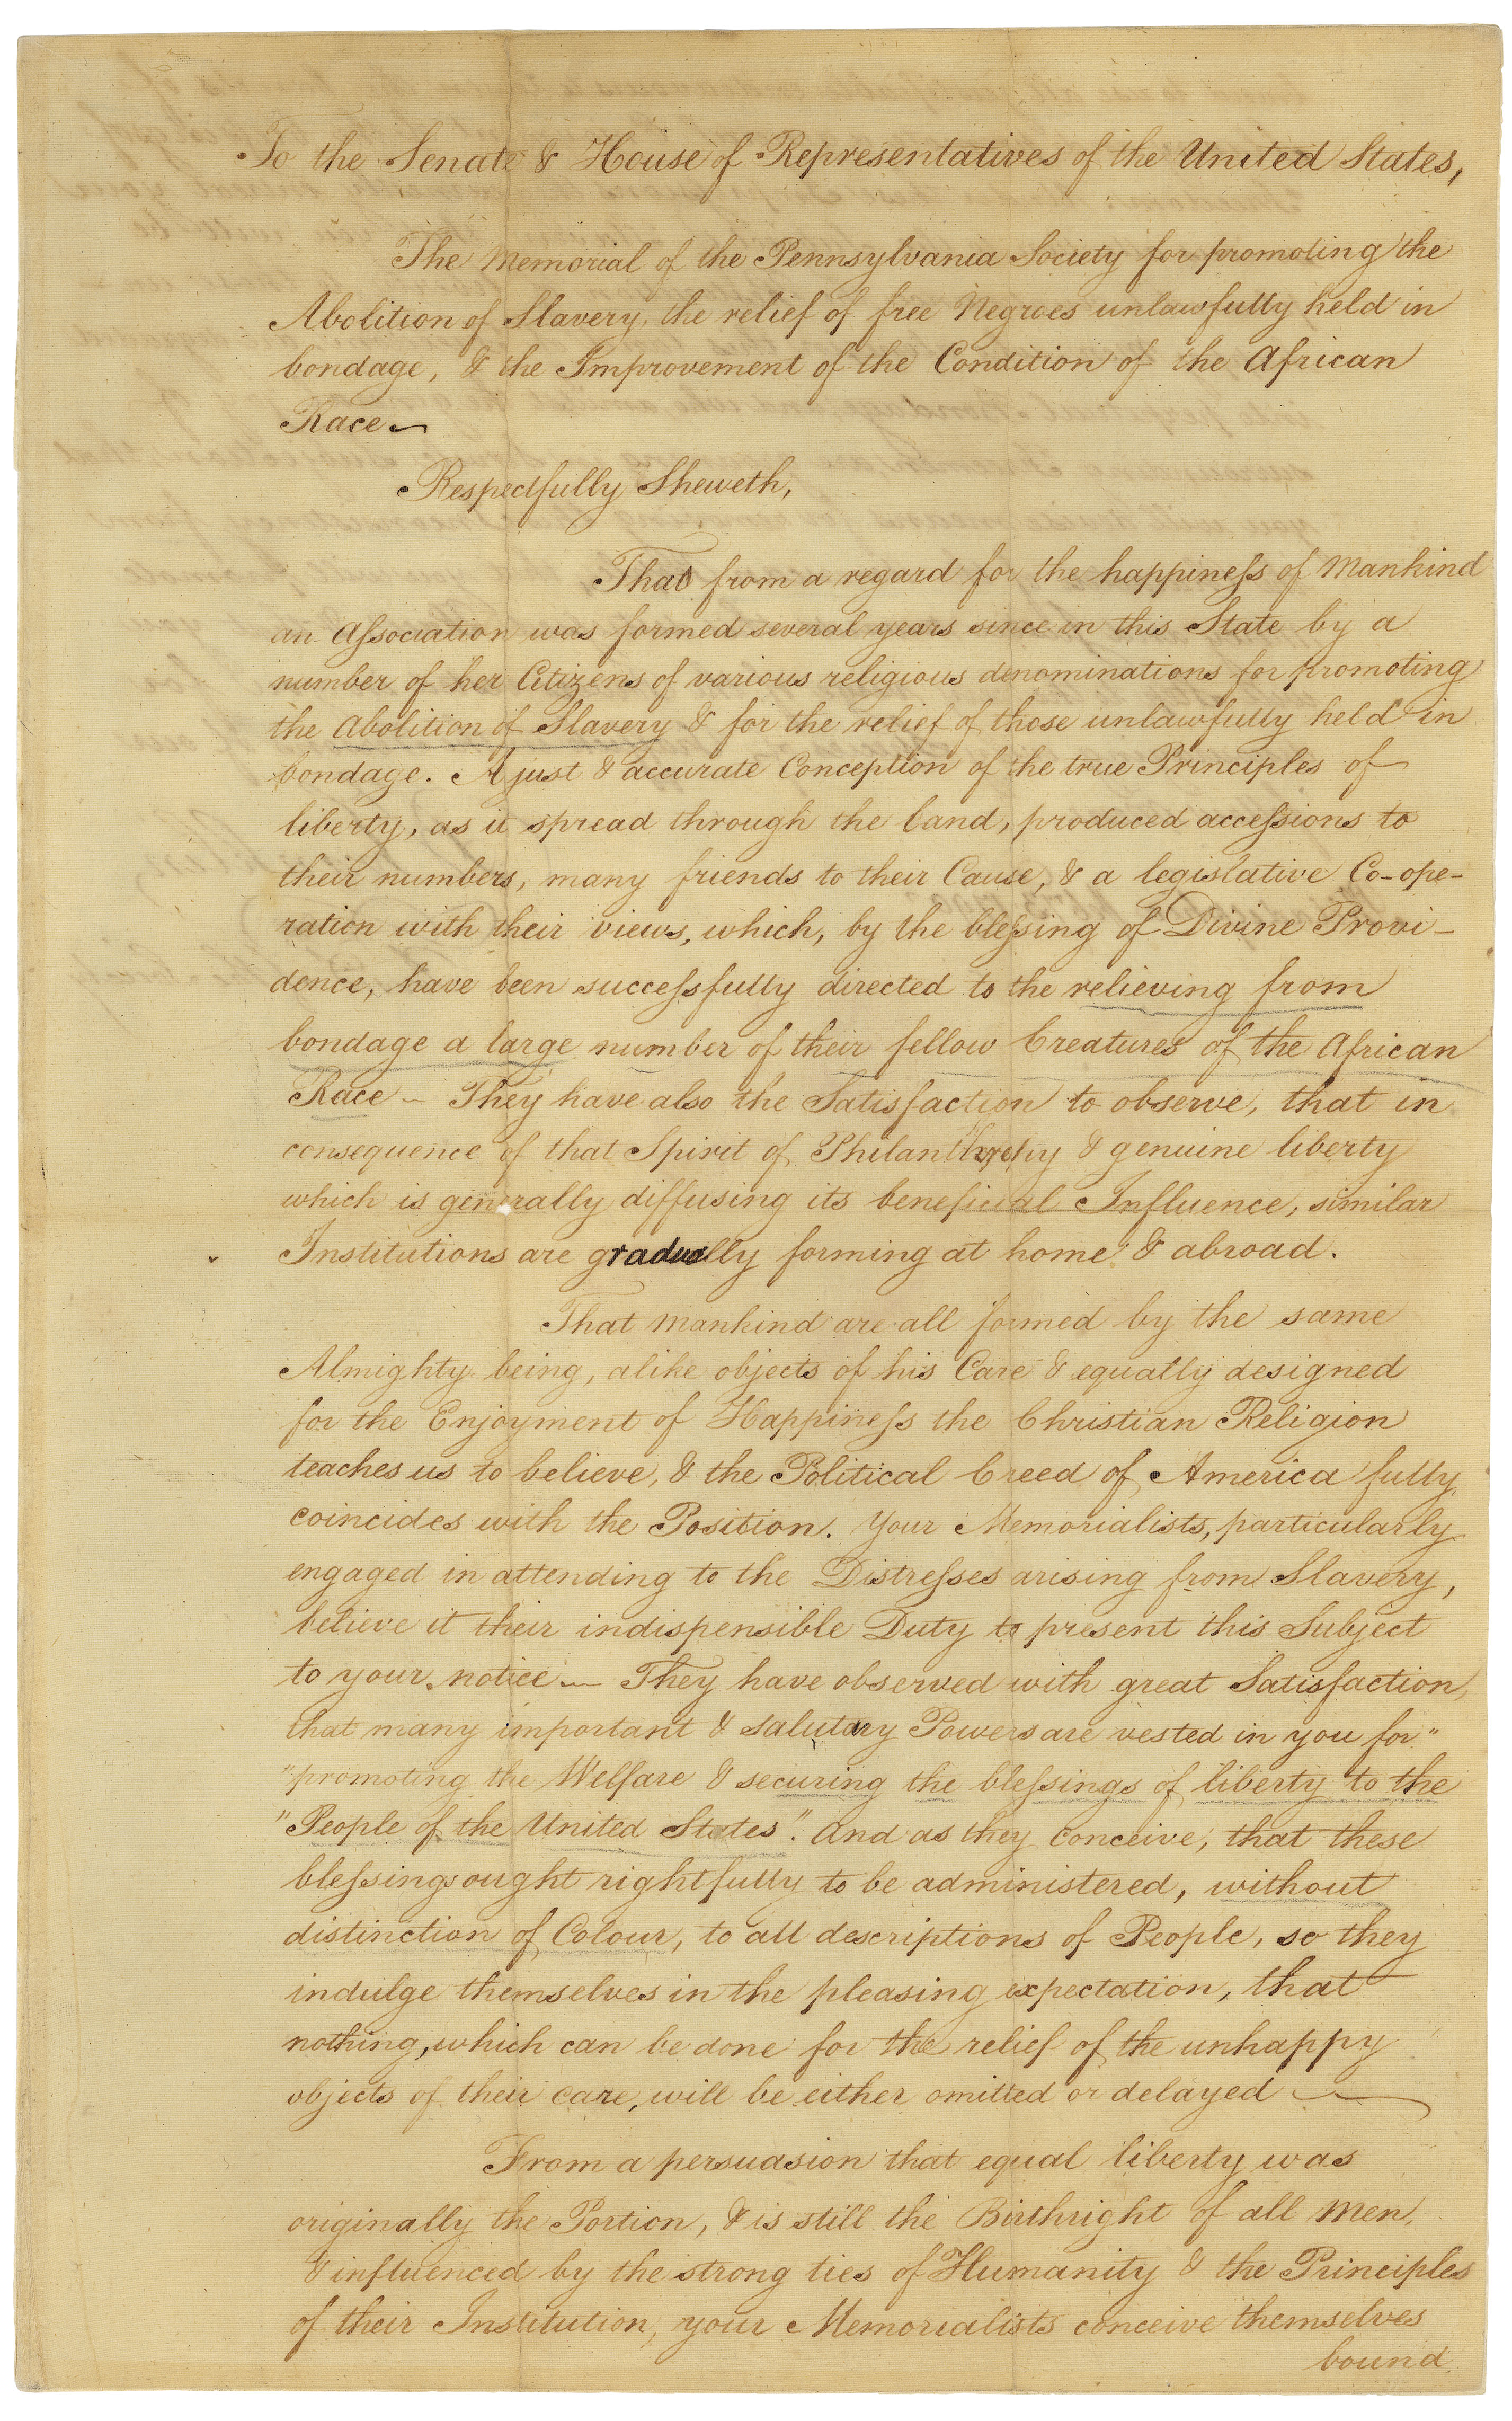 Petition from the Pennsylvania Society for Promoting the Abolition of Slavery to Vice President John Adams, February 3, 1790. (National Archives Identifier 306388)